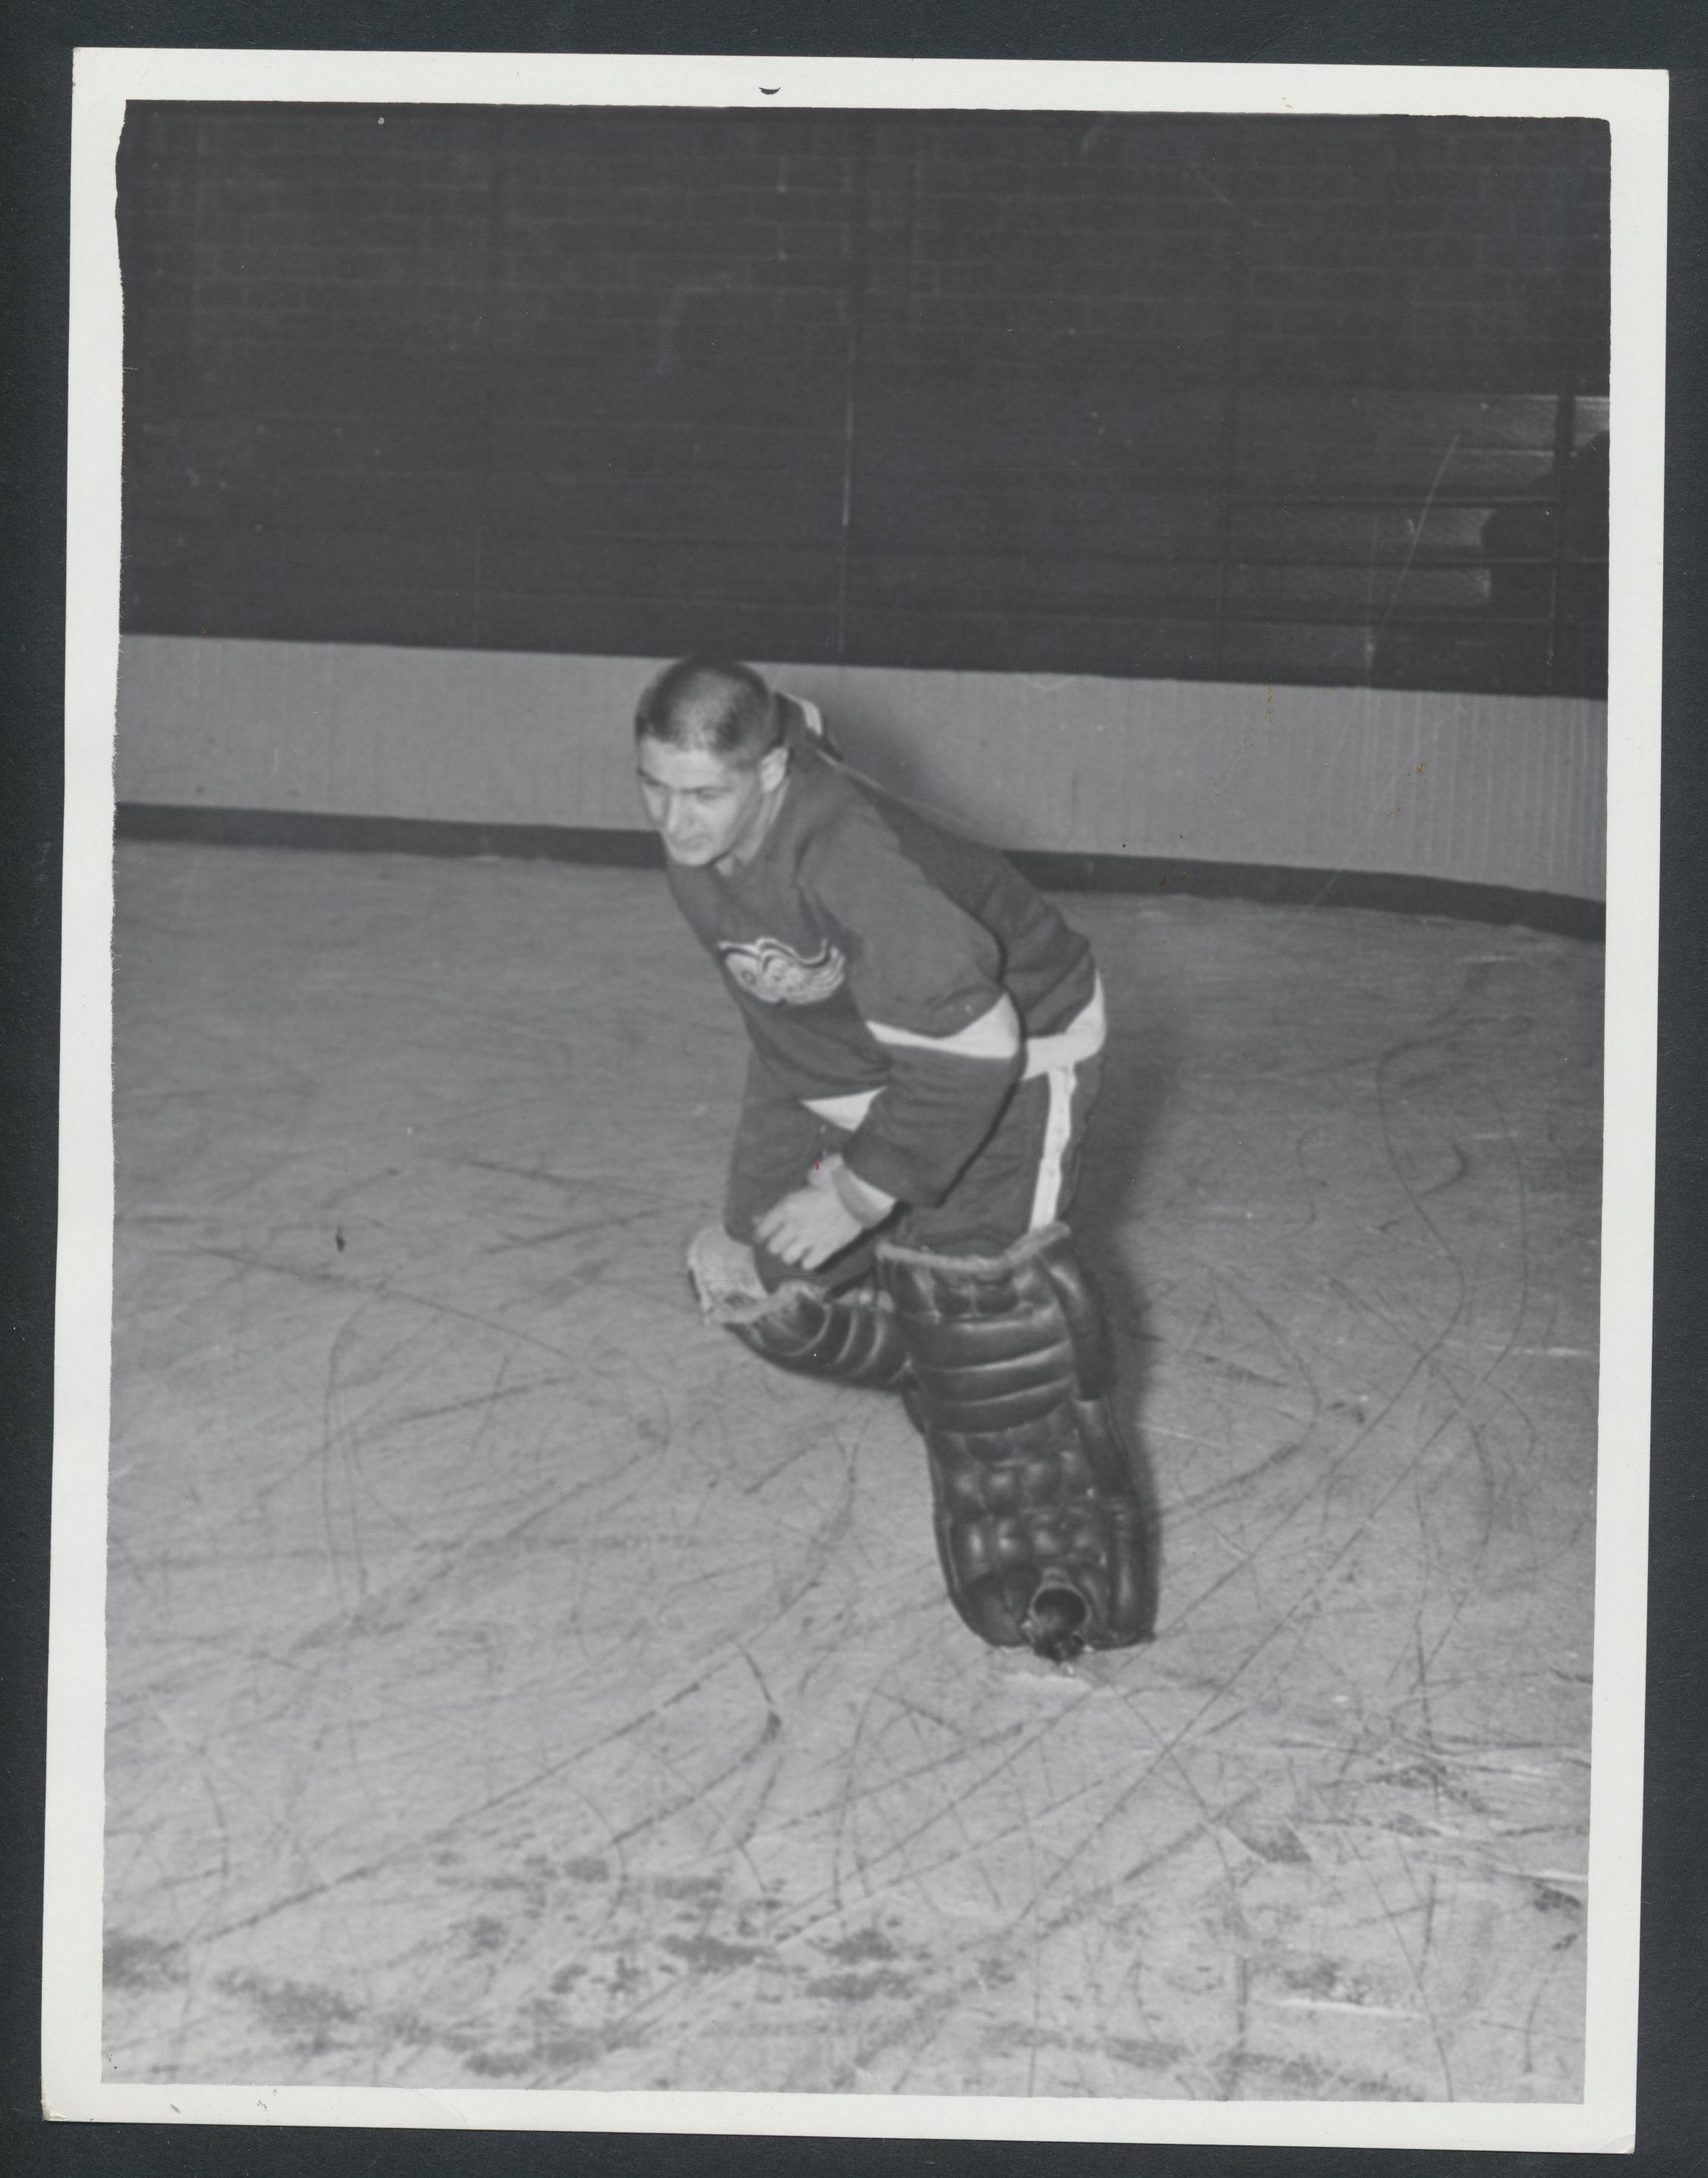 Original Terry Sawchuk -Detroit Red Wings Press Photo 1957 Vintage NHL Hockey